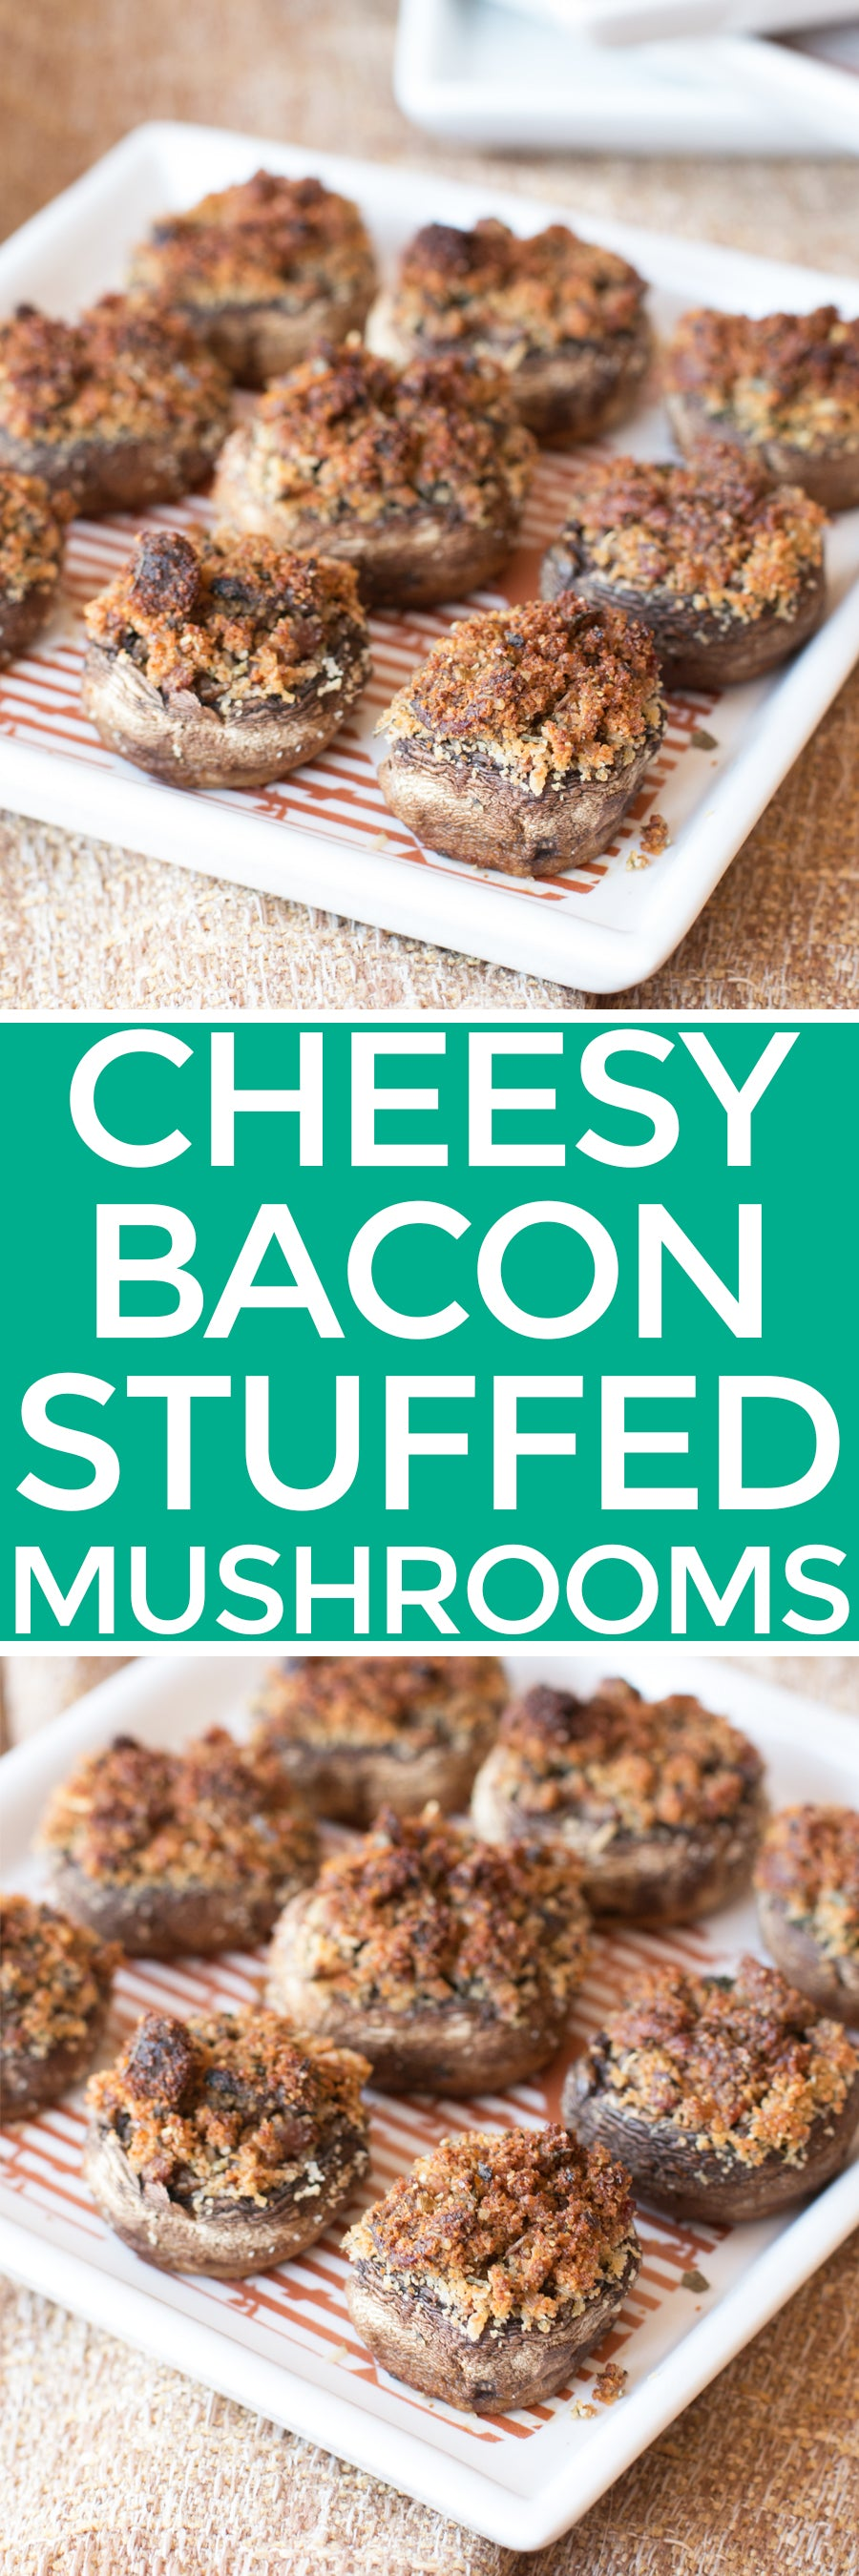 Cheesy Bacon Stuffed Mushrooms | pigofthemonth.com #appetizer #party